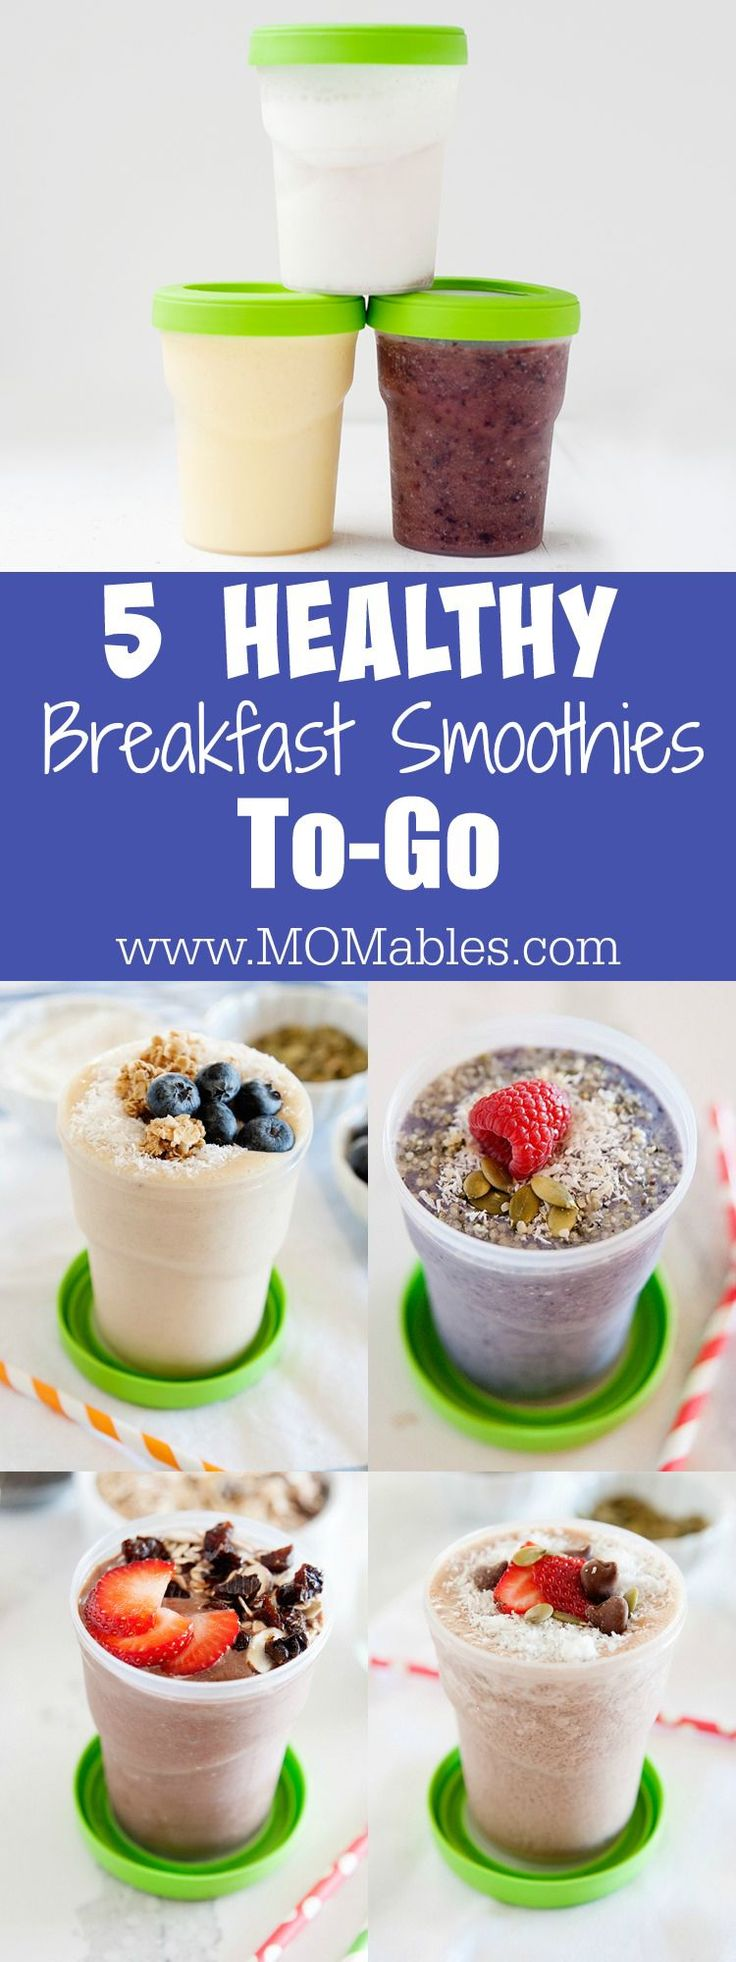 These five smoothie recipes are filled with nutrition and are perfect for a quick breakfast. The best part? They are 100% portable and can easily be packed inside the lunchbox.